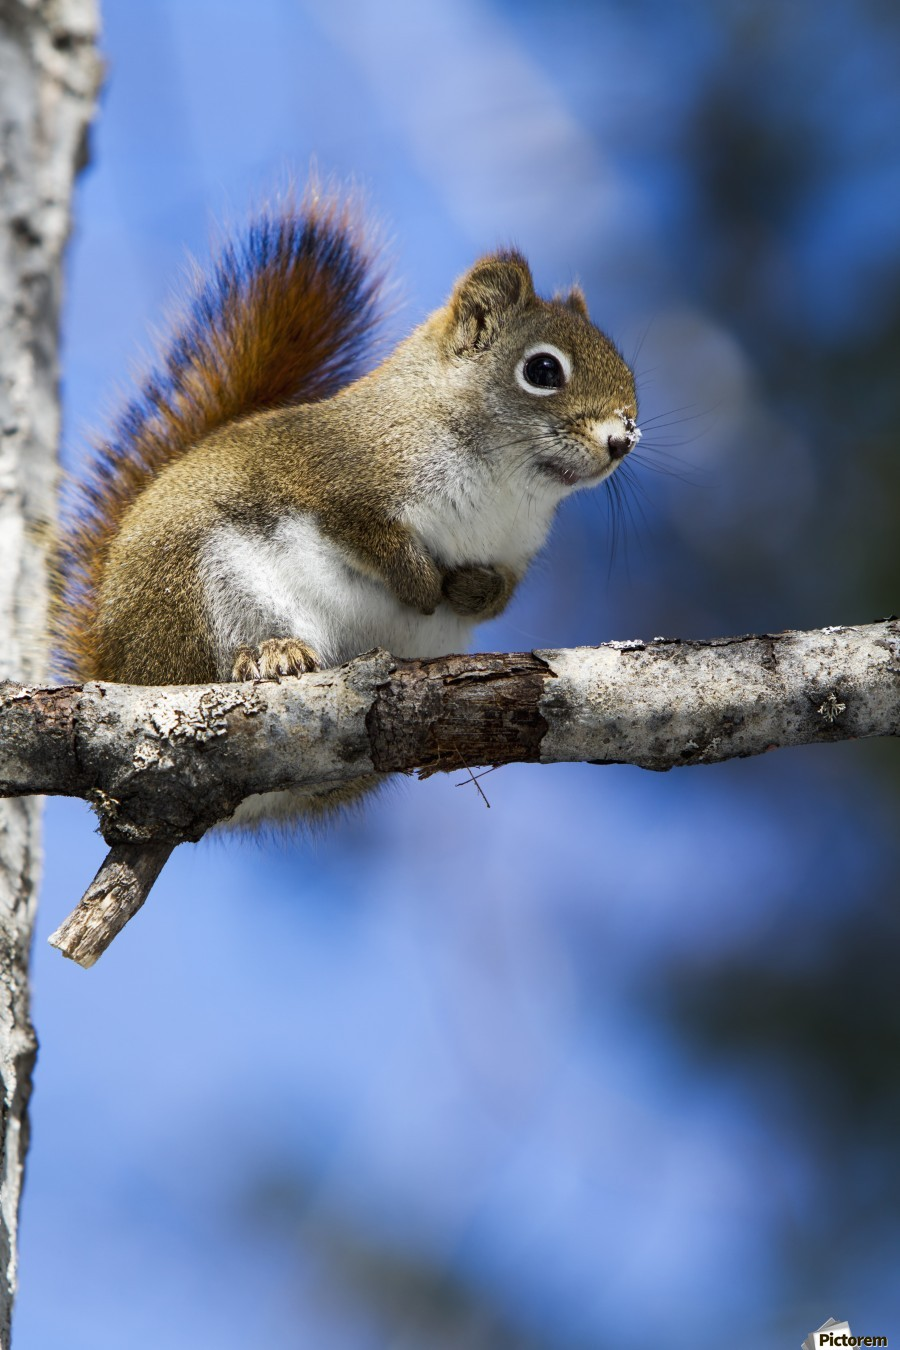 Eastern grey squirrel (Sciurus carolinensis) perched on a branch; Quebec, Canada  Print